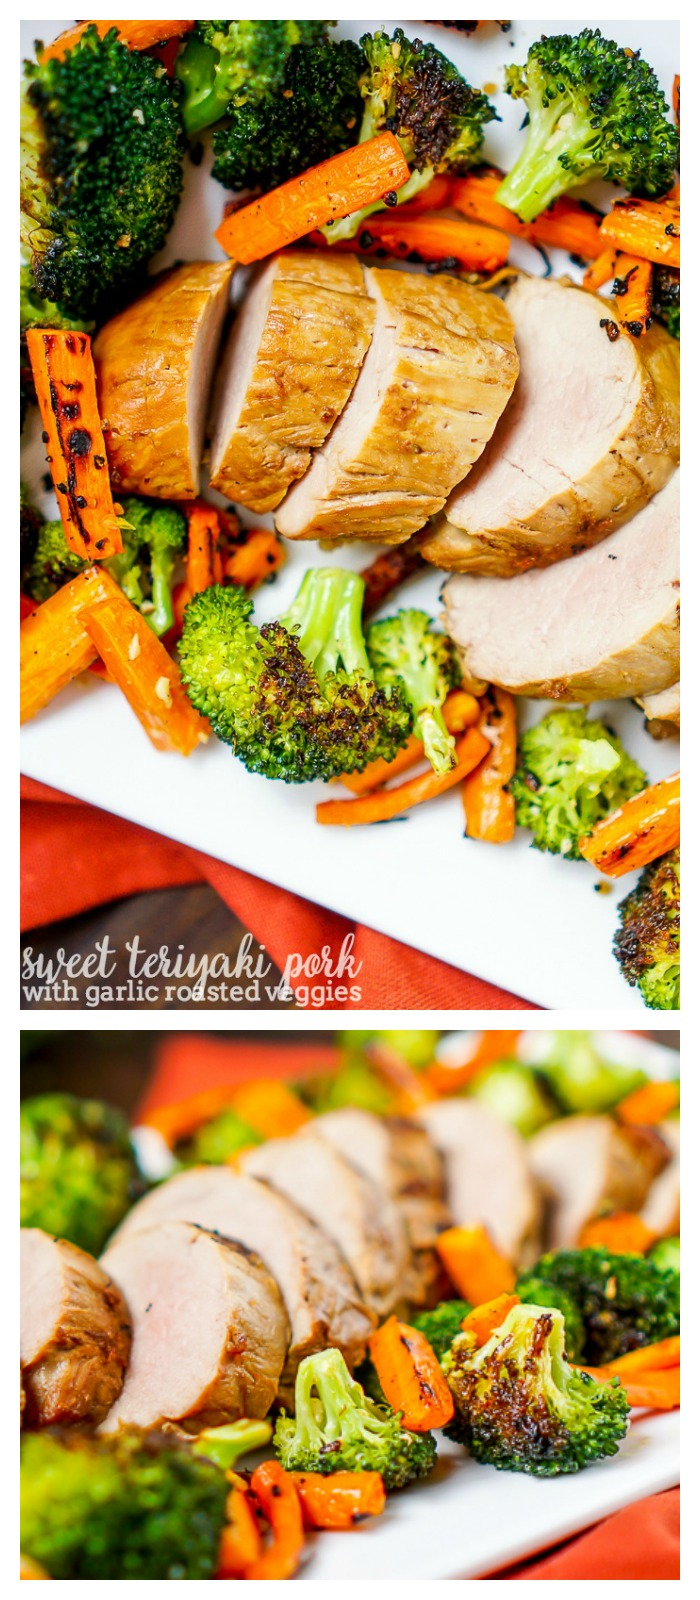 Sweet Teriyaki Pork with Garlic Oven Roasted Vegetables - Make this delicious home cooked dinner idea in 30 minutes, making it an easy weeknight meal!   The Love Nerds #ad #RealFlavorRealFast @SmithfieldBrand